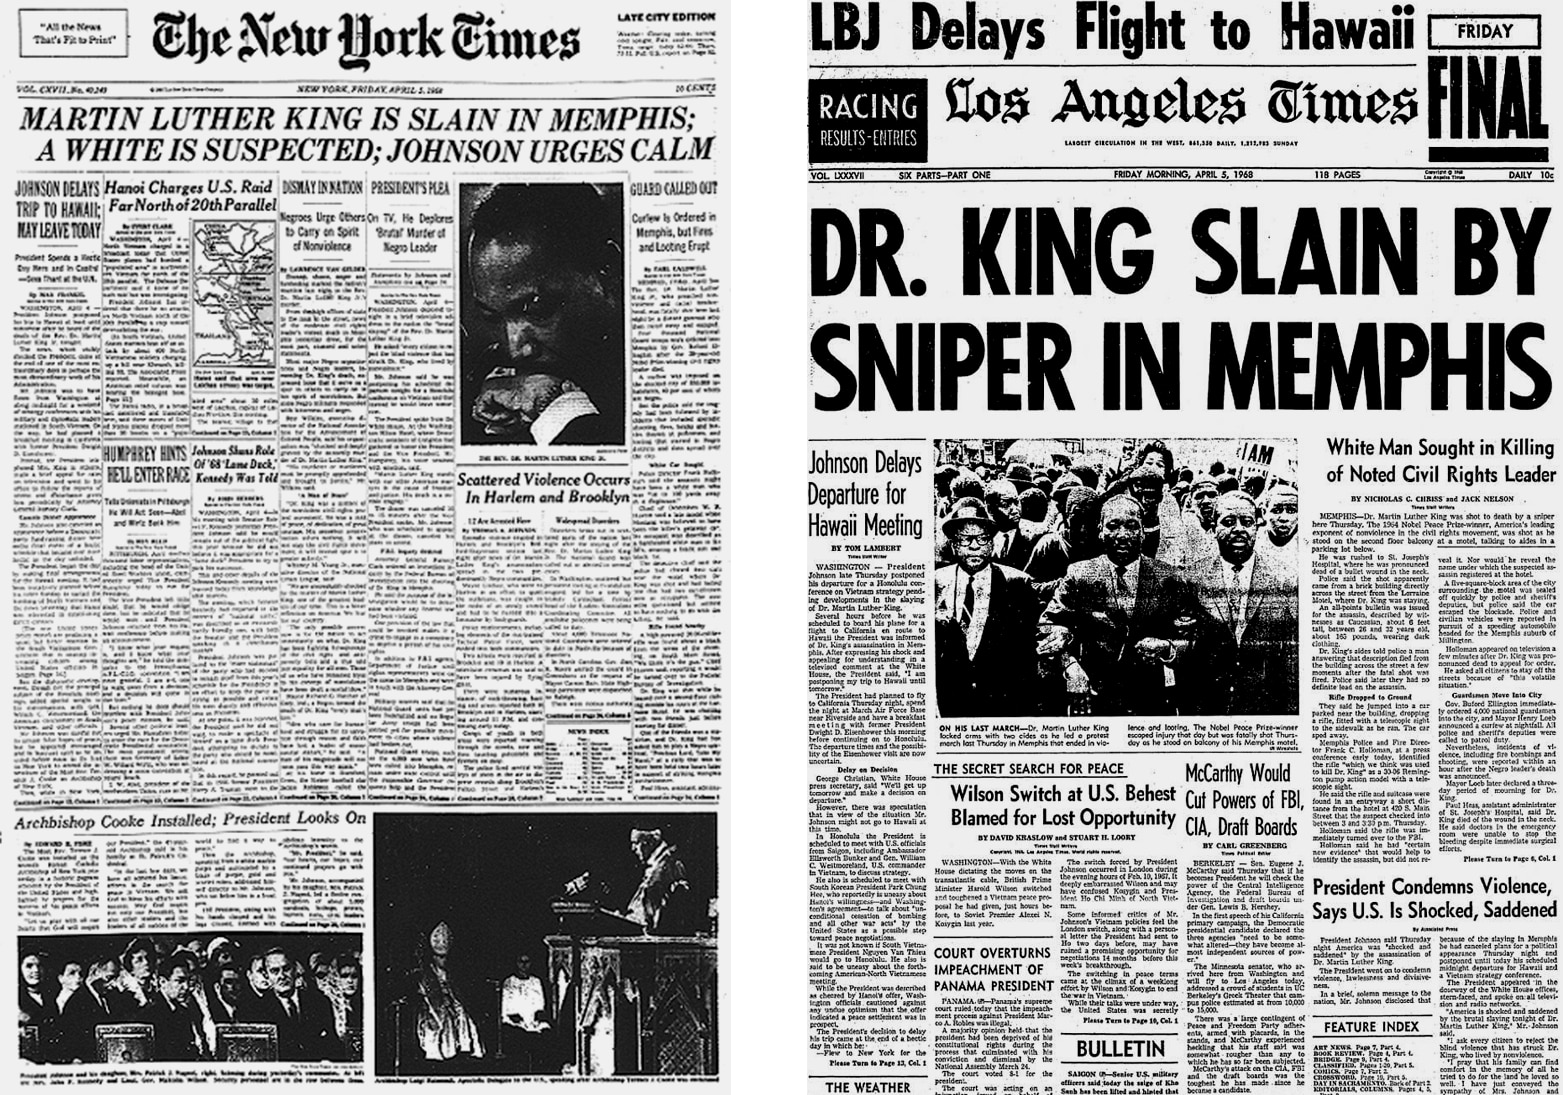 The New York Times and Los Angeles Times front pages